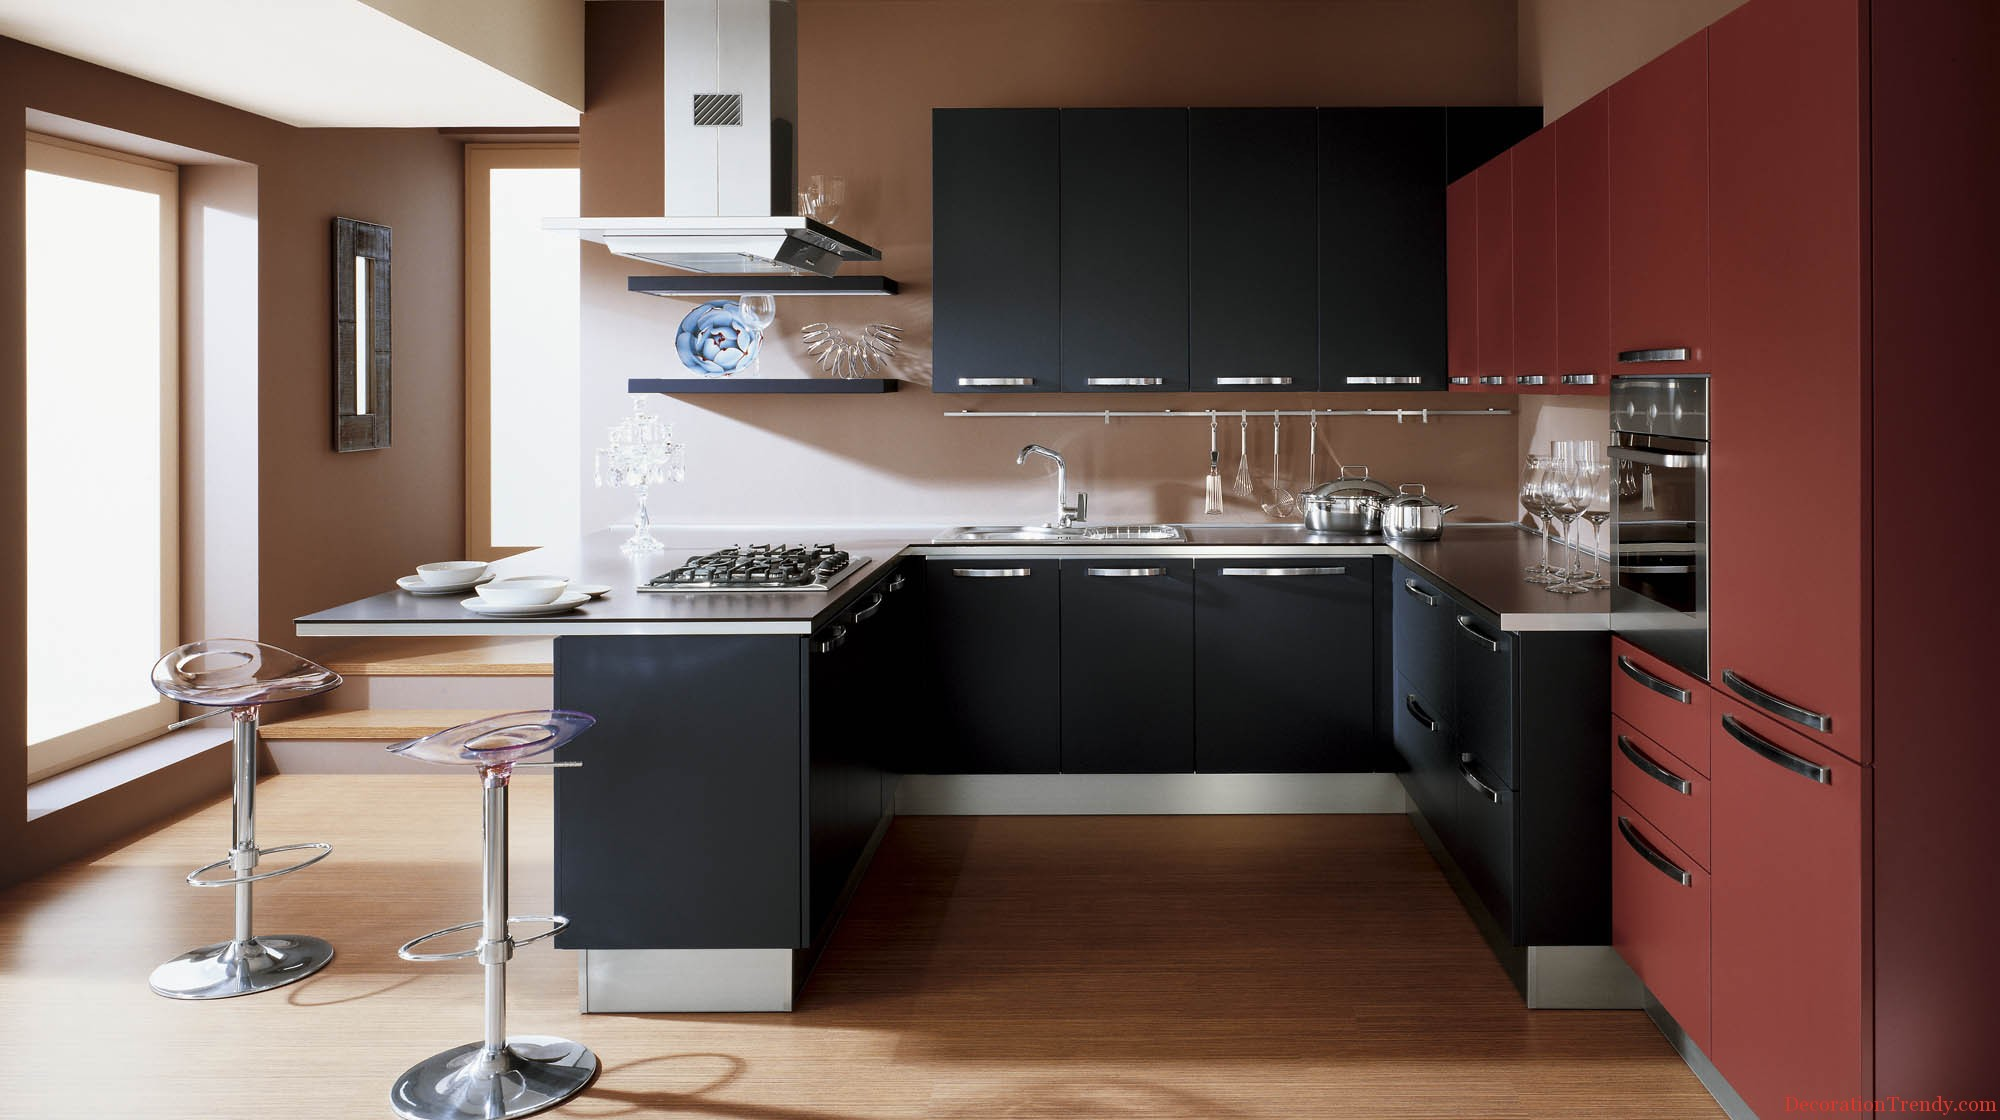 contemporary kitchen design stainless steel hood 41 43 small ideas inspirationseek